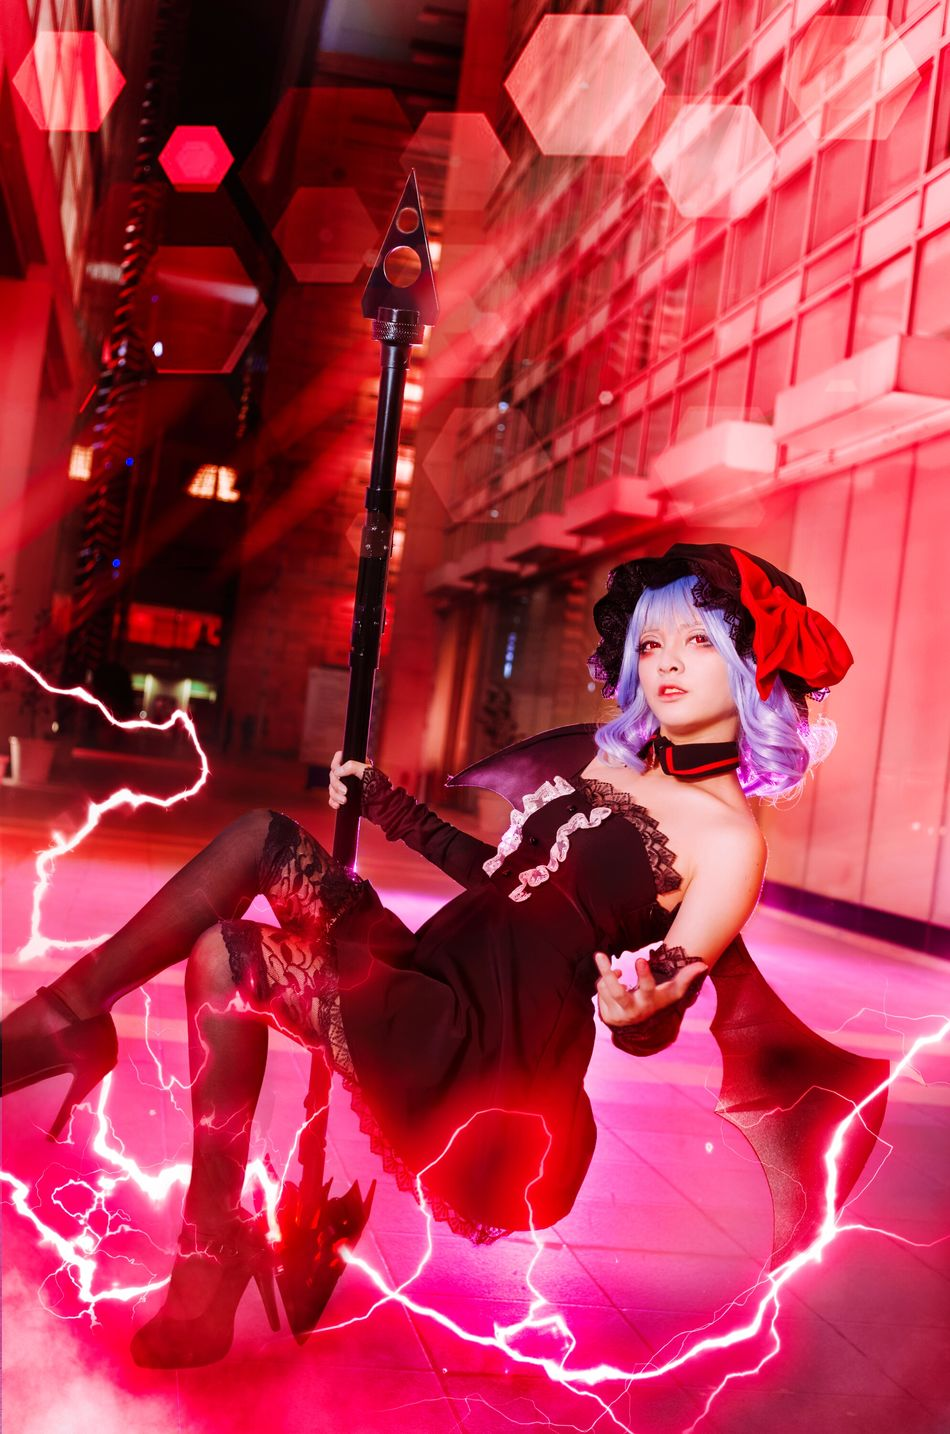 Castelia of the Scarlet Devil City Remilia Scarlet Red Young Adult Asdgraphy Cosplay Portrait Girl Night Floating Levitation Urban City Touhou Project Photo Manipulation